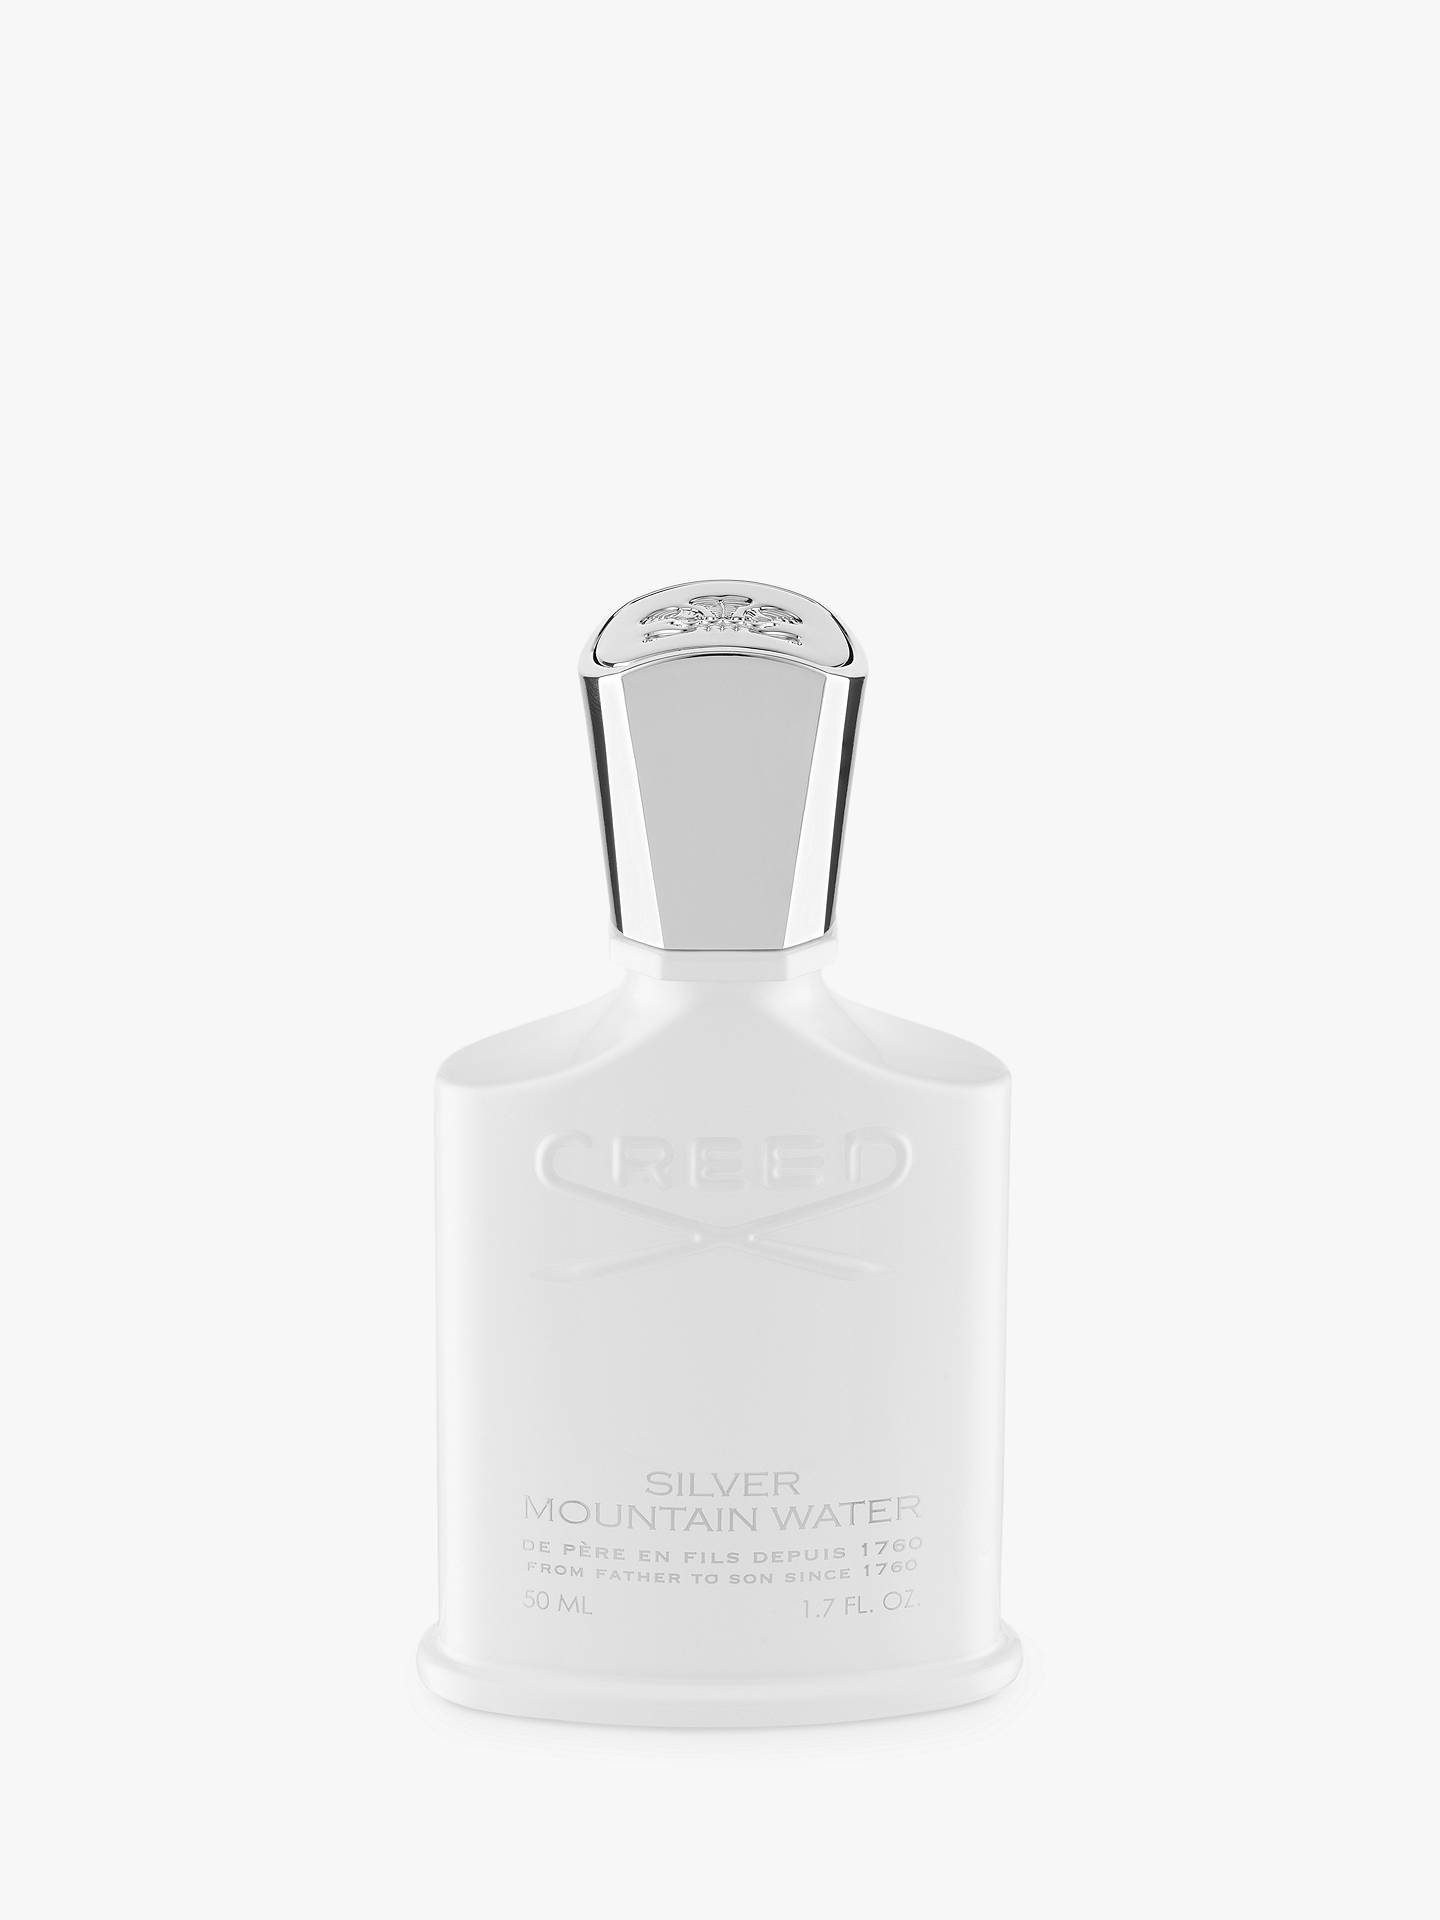 Creed Silver Mountain Water Eau De Parfum 50ml At John Lewis Partners